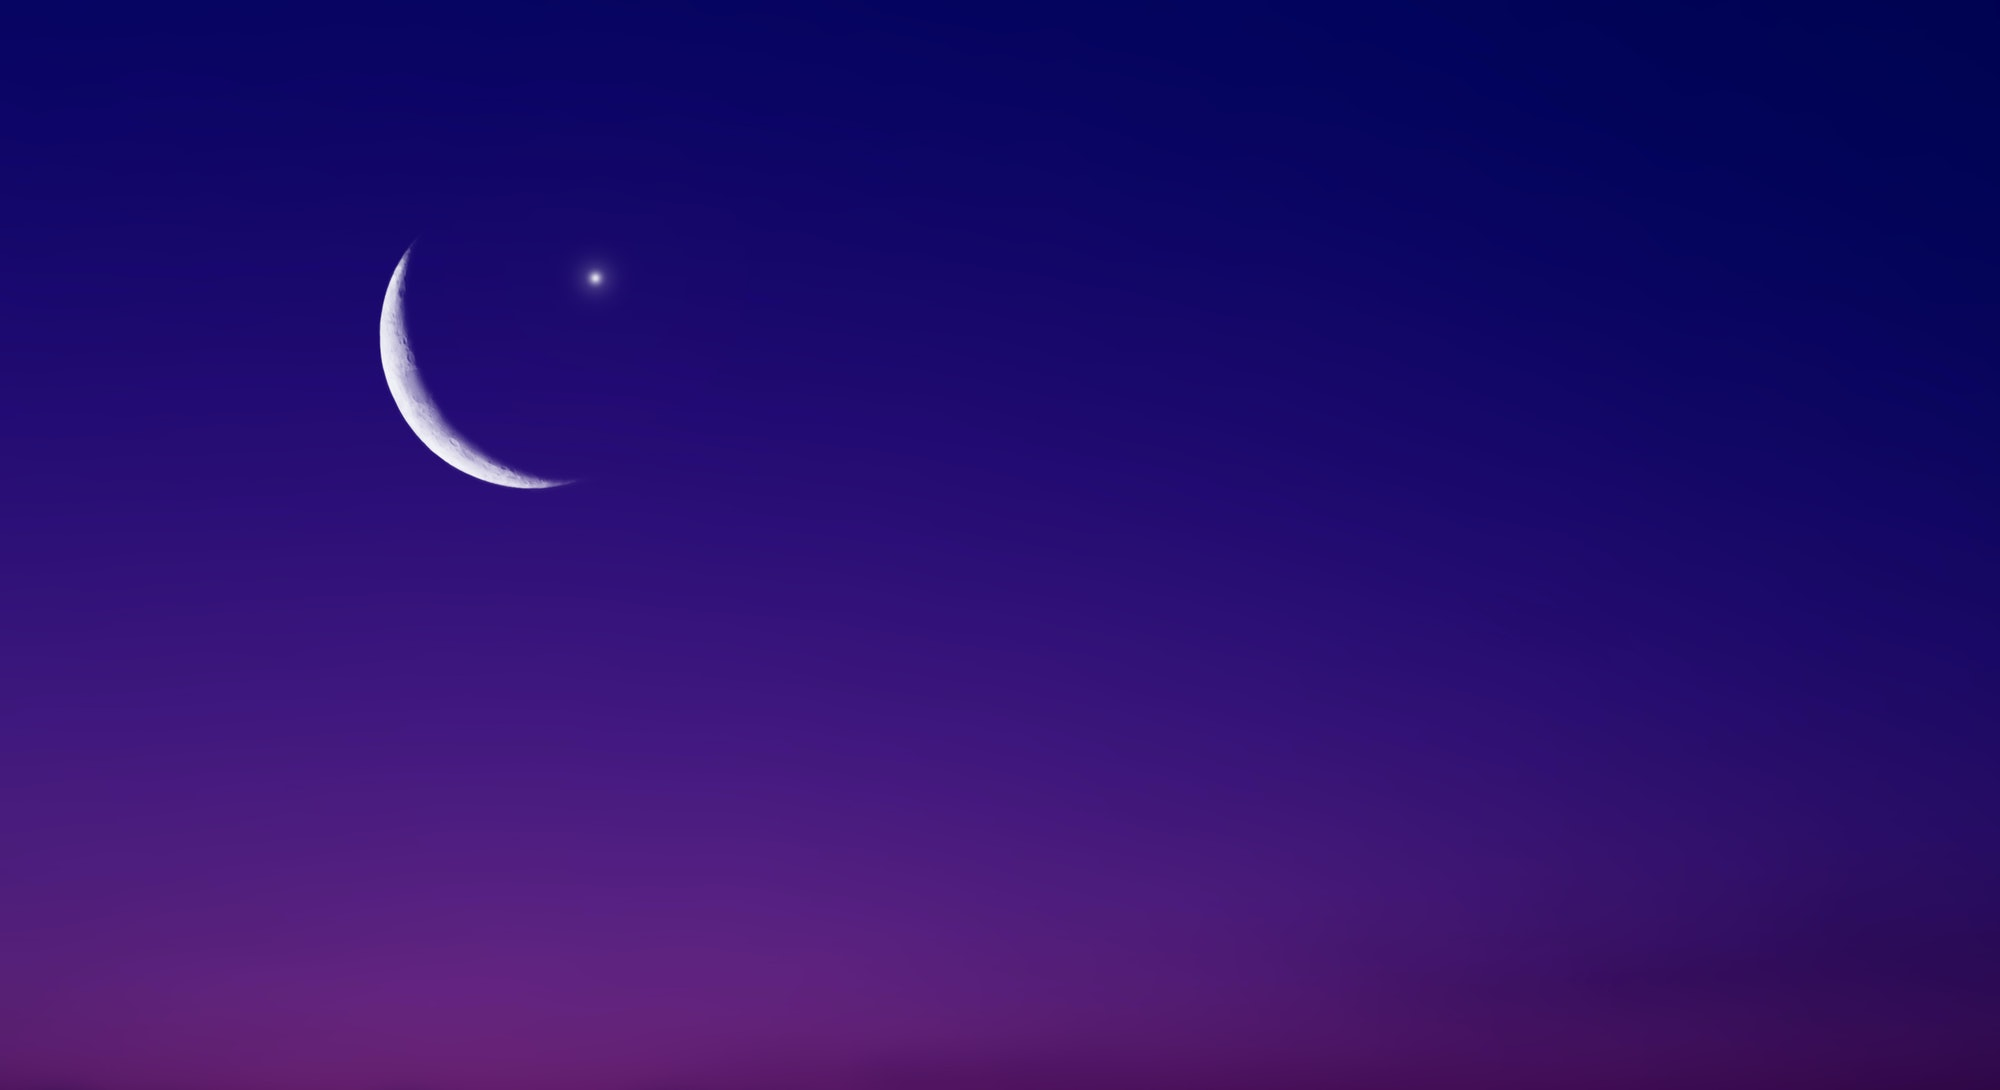 The July 2021 new moon is the first new moon of the summer.